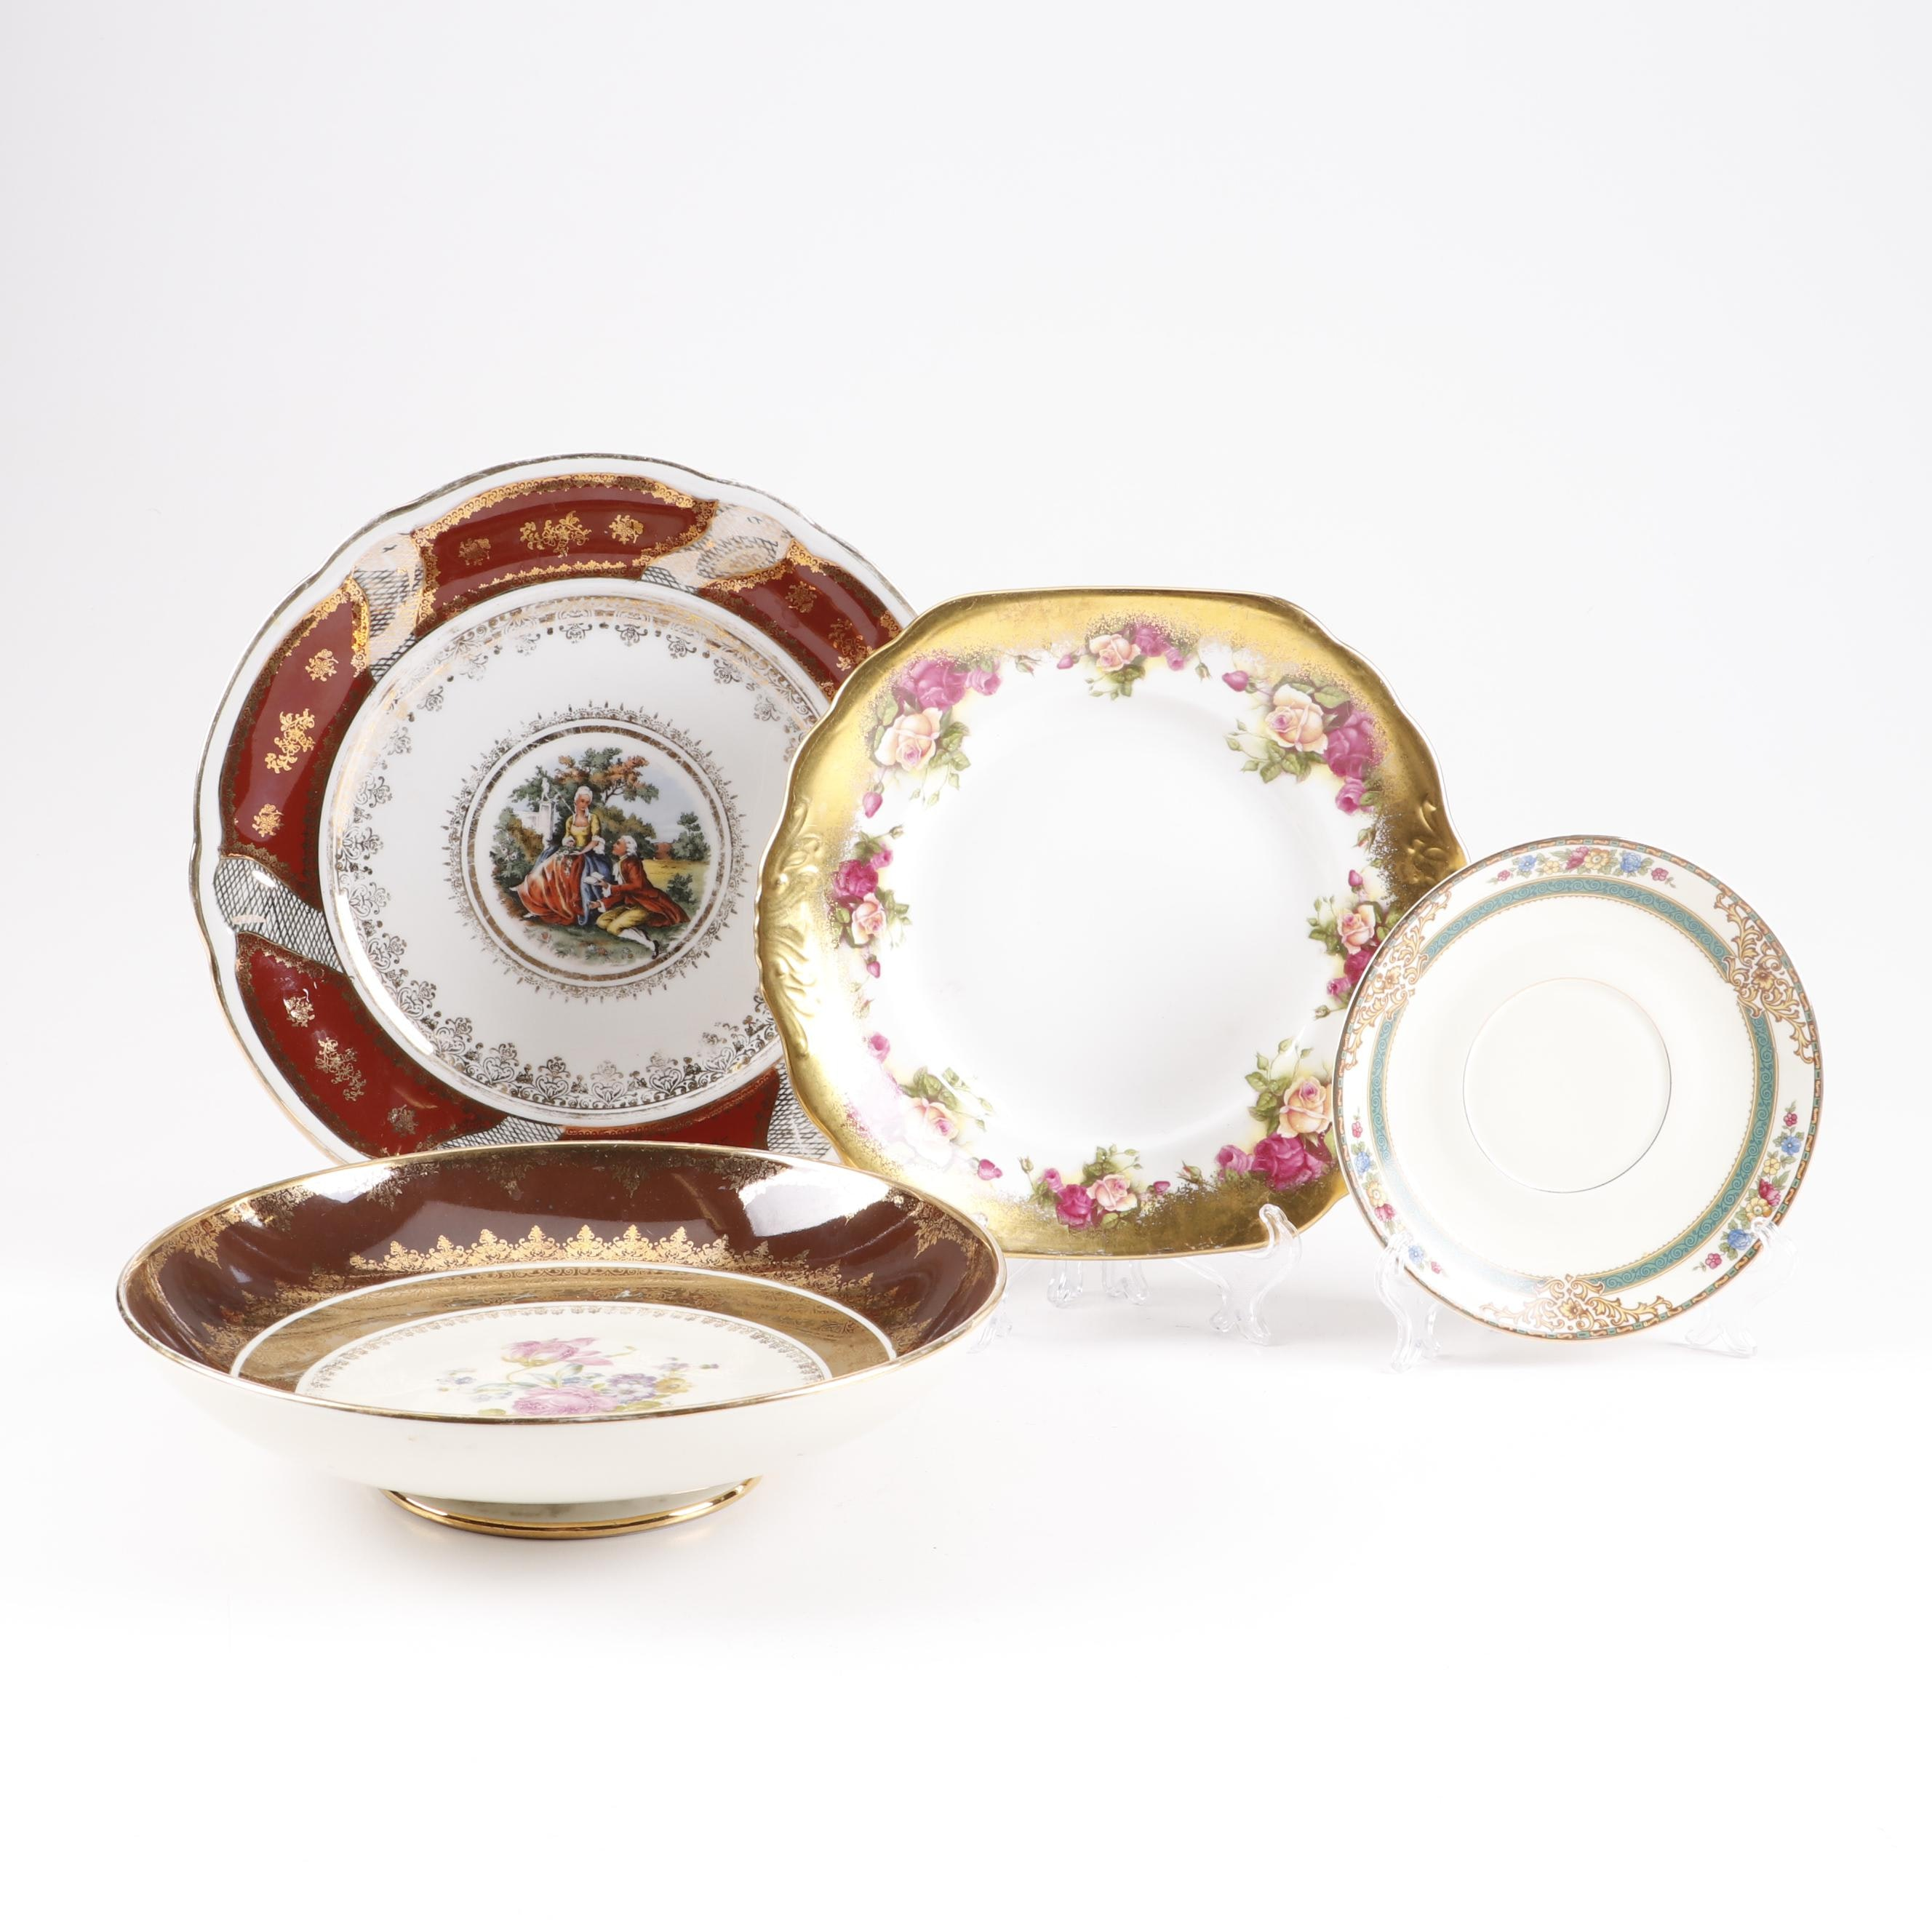 Bavarian Porcelain and English Bone China Tableware